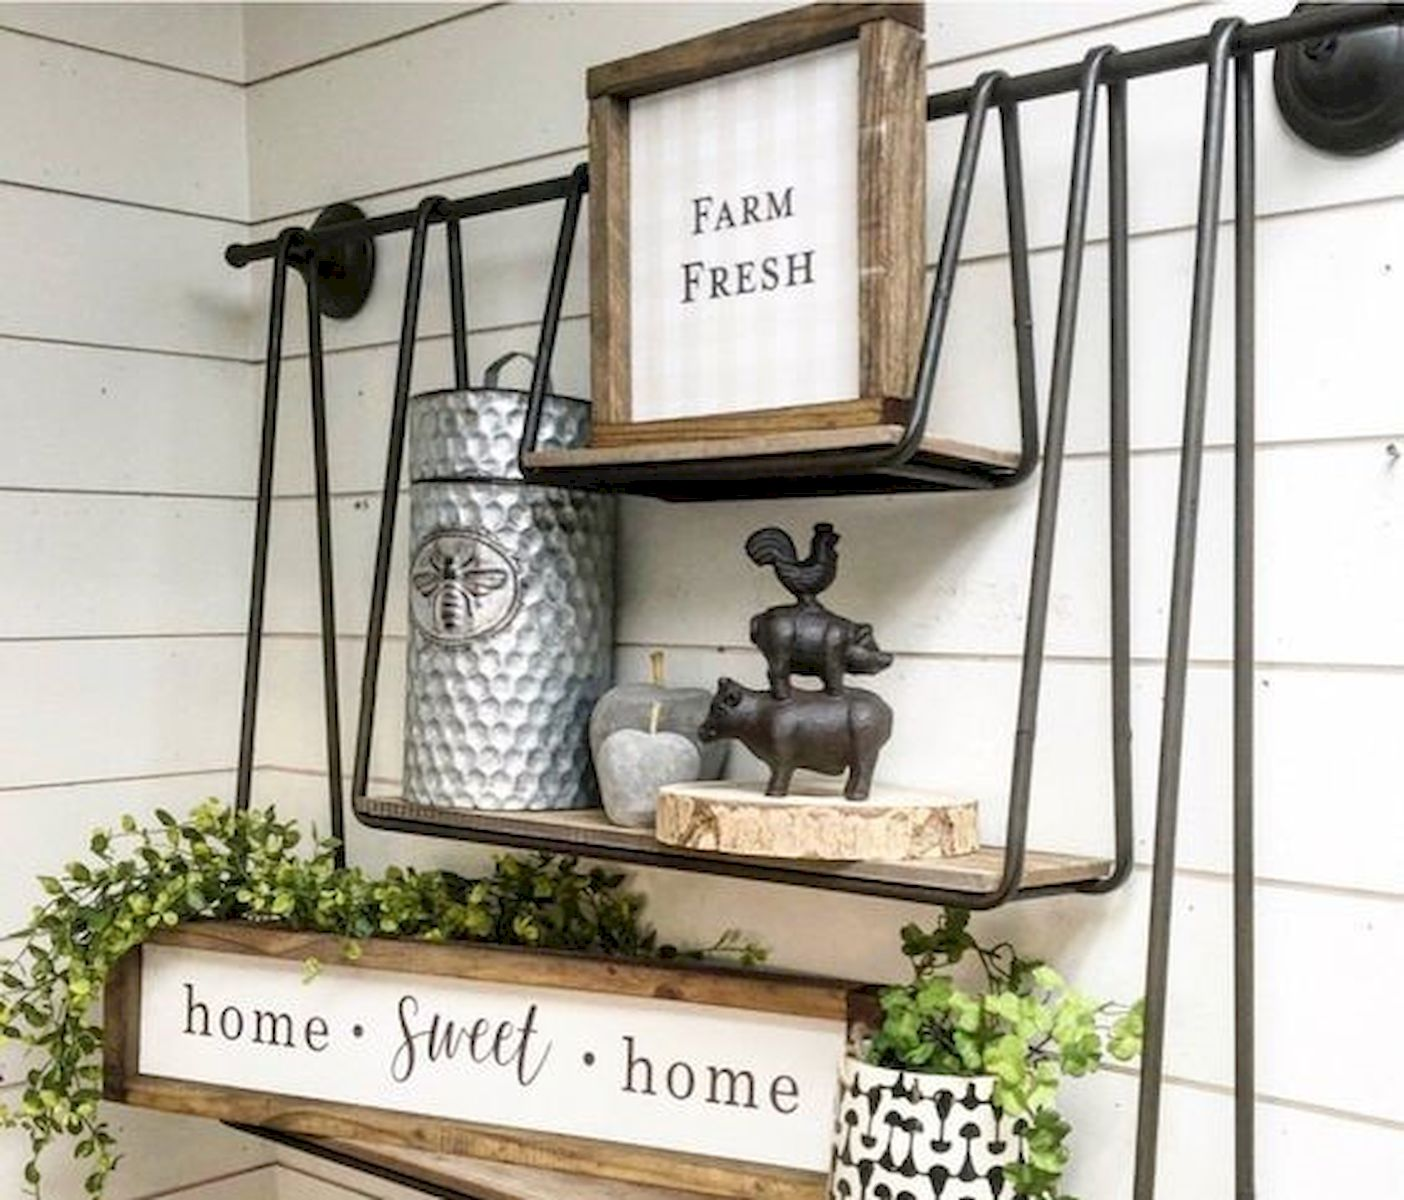 65 Wonderful DIY Rustic Home Decor Ideas - Googodecor